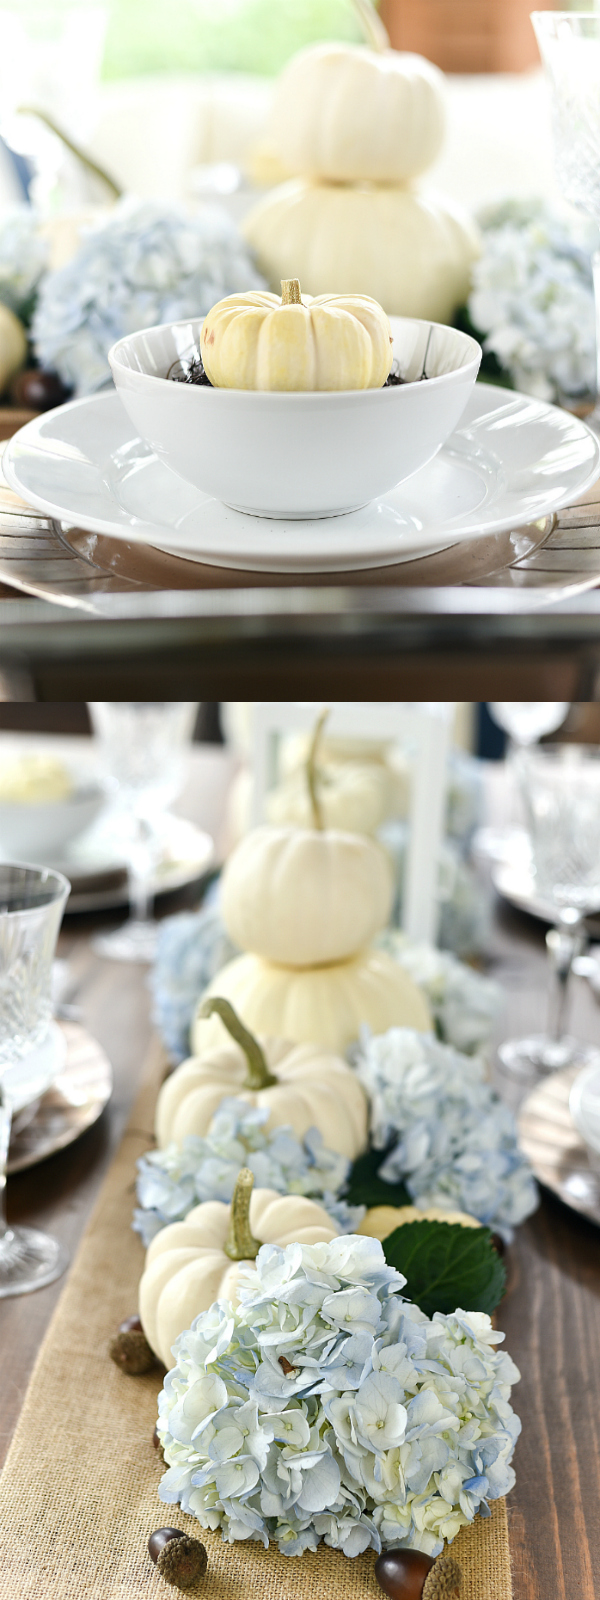 White Pumpkin & Hydrangea Centerpiece and Table Setting for Fall - Fall Table Setting Ideas - Fall Centerpiece with Pumpkins